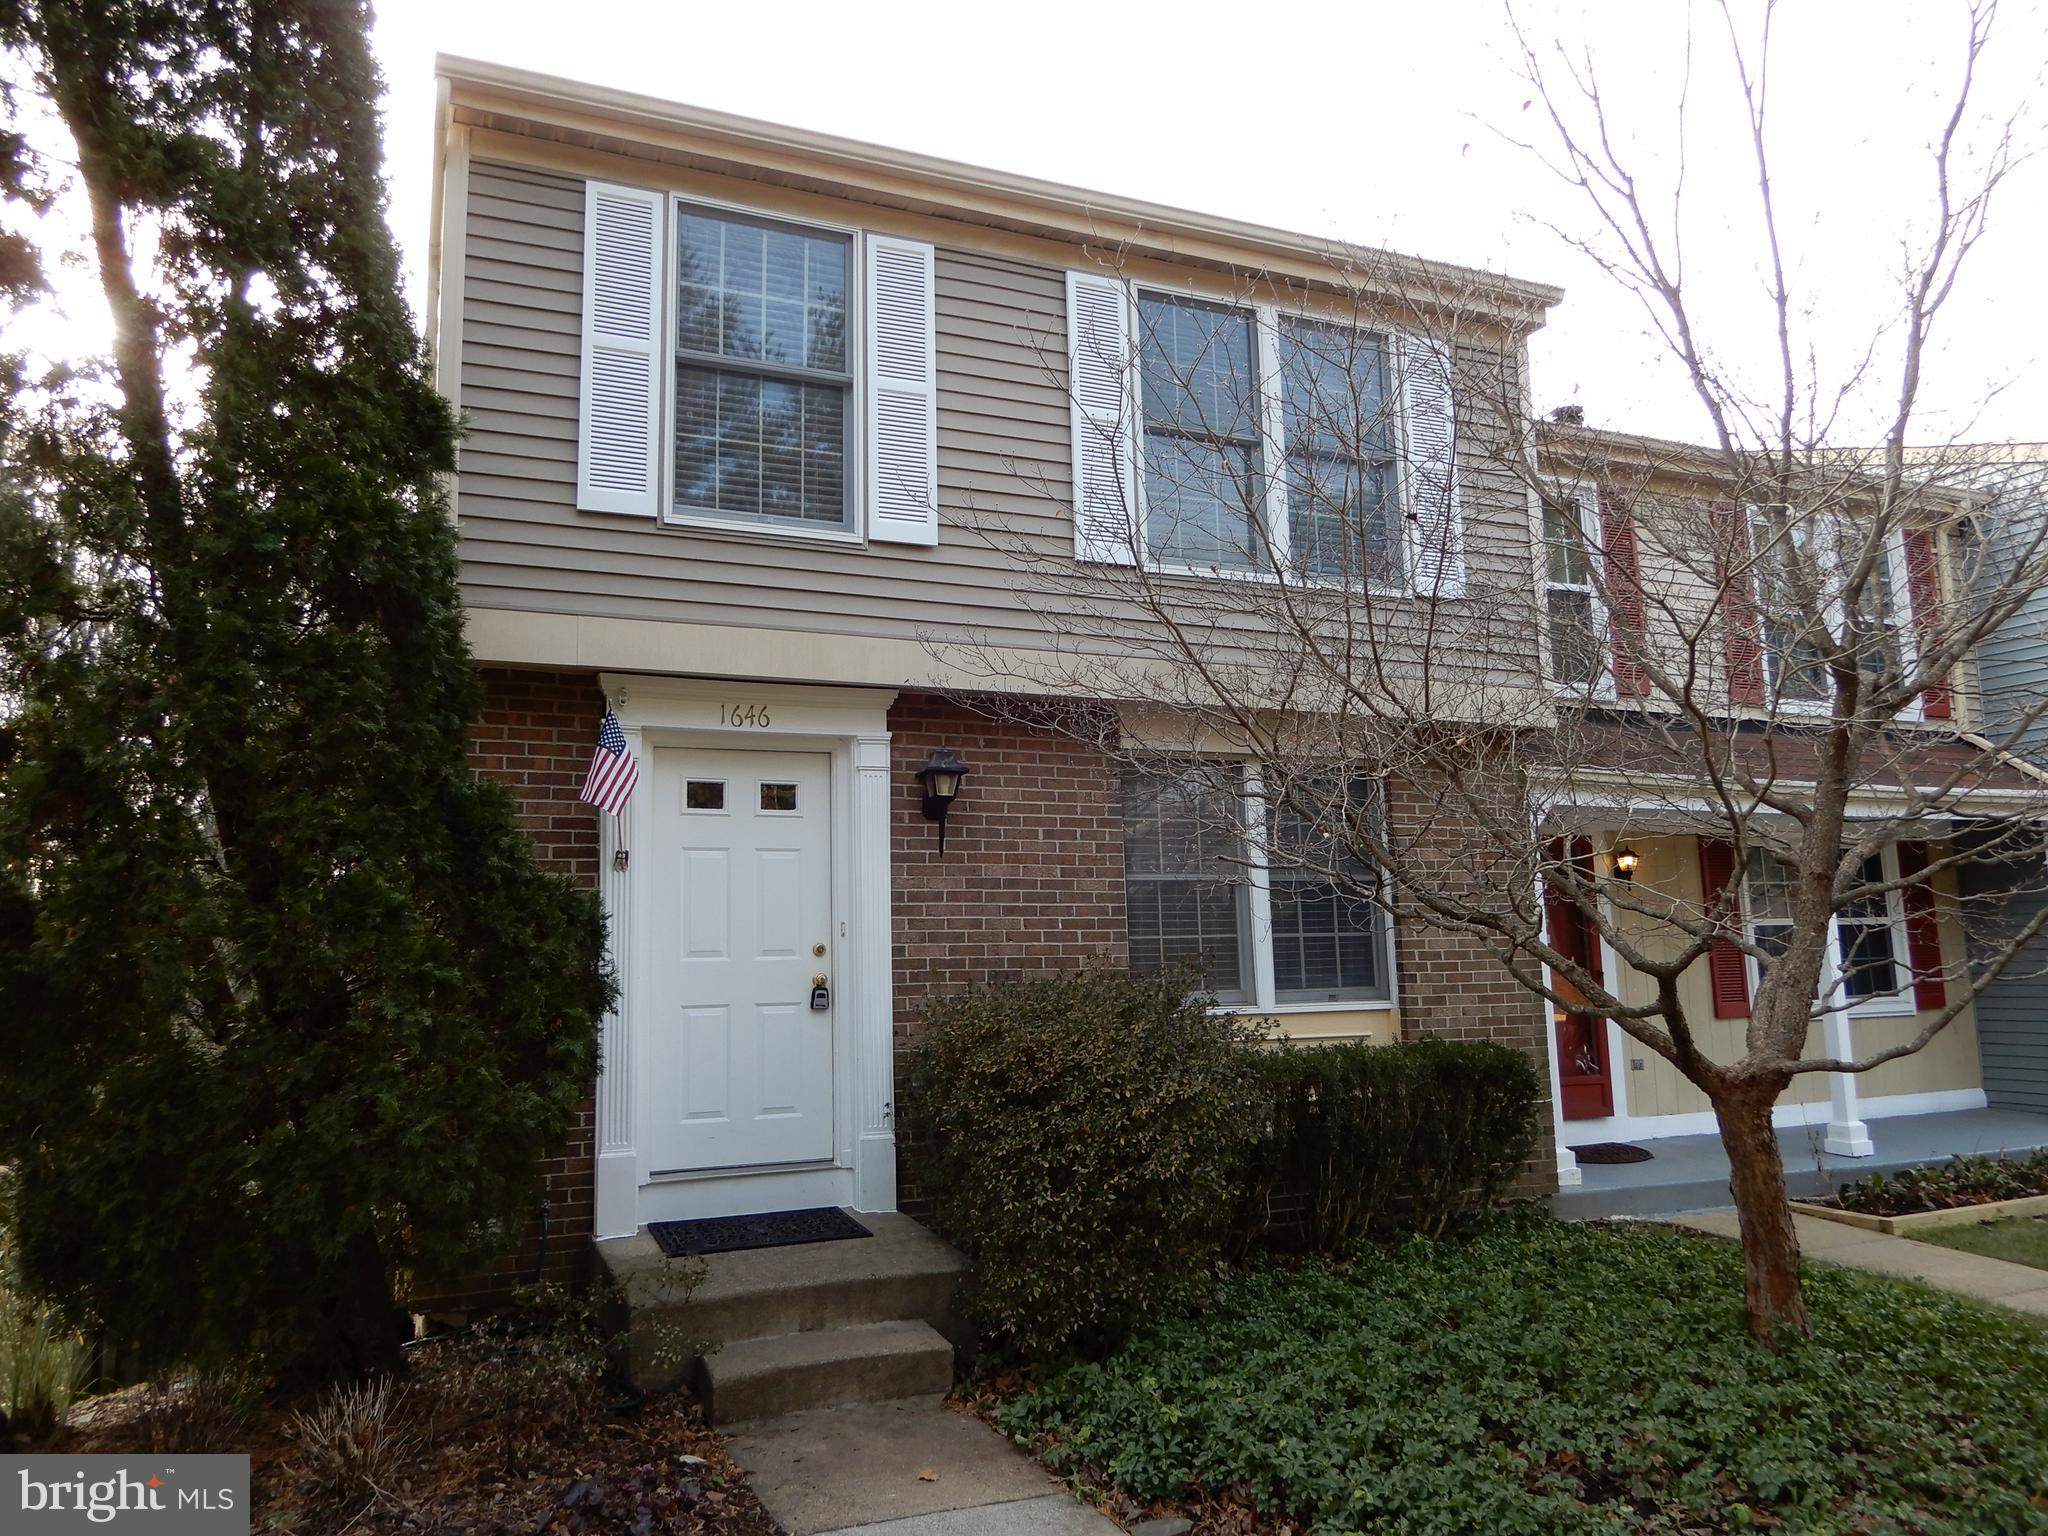 Bright and Cheerful & All Ready to Go for Jan 1 (or before) Occupancy! * Handsome End Townhouse loaded with Upgrades Through out * Fresh Paint, Beautiful Main Lvl Floors * Carpeted Lower Level Rec Rm * Cozy Wood Burning Fireplace & Brick Hearth * Walk Out to Fenced Back Yard * Backs to Forest! * Located Just North of Reston Town Center * Metro Coming Soon! * Dulles Airport Just Mins Away * Reston Town Center with All Her Stores/Shops/ Cool Eateries Just Mins Away! *